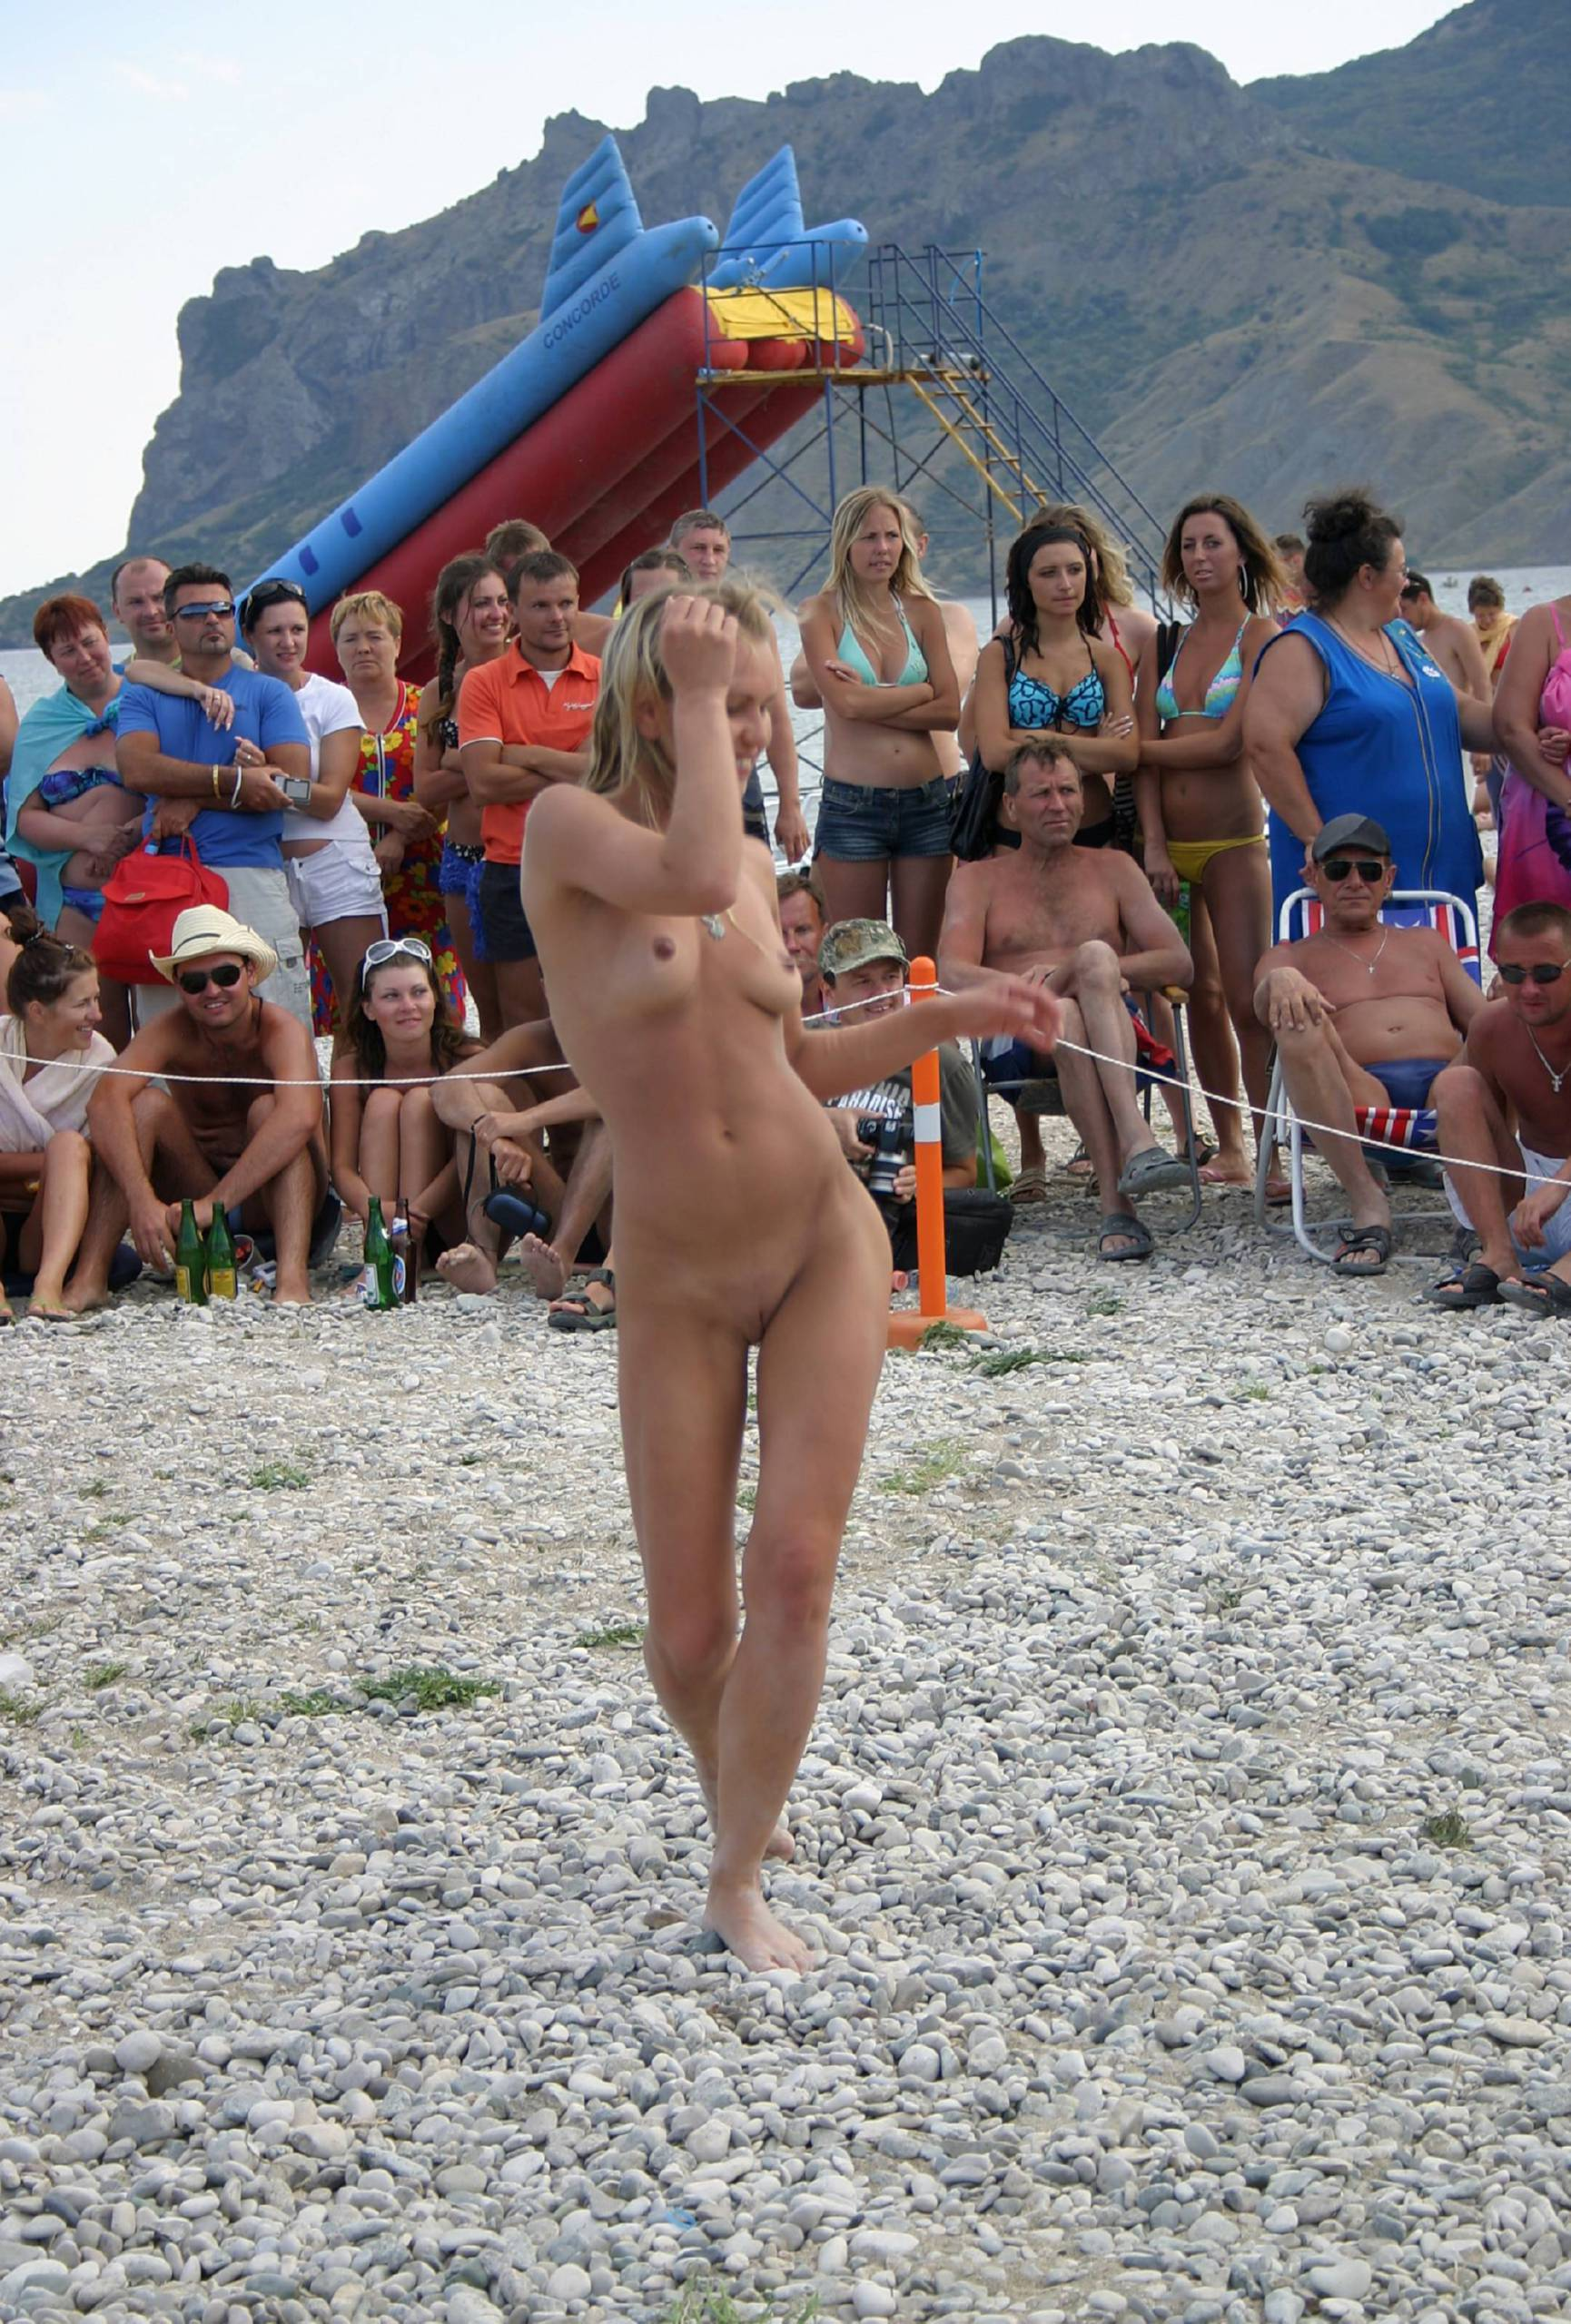 Nudist Gallery Profile and Group Dancing - 2